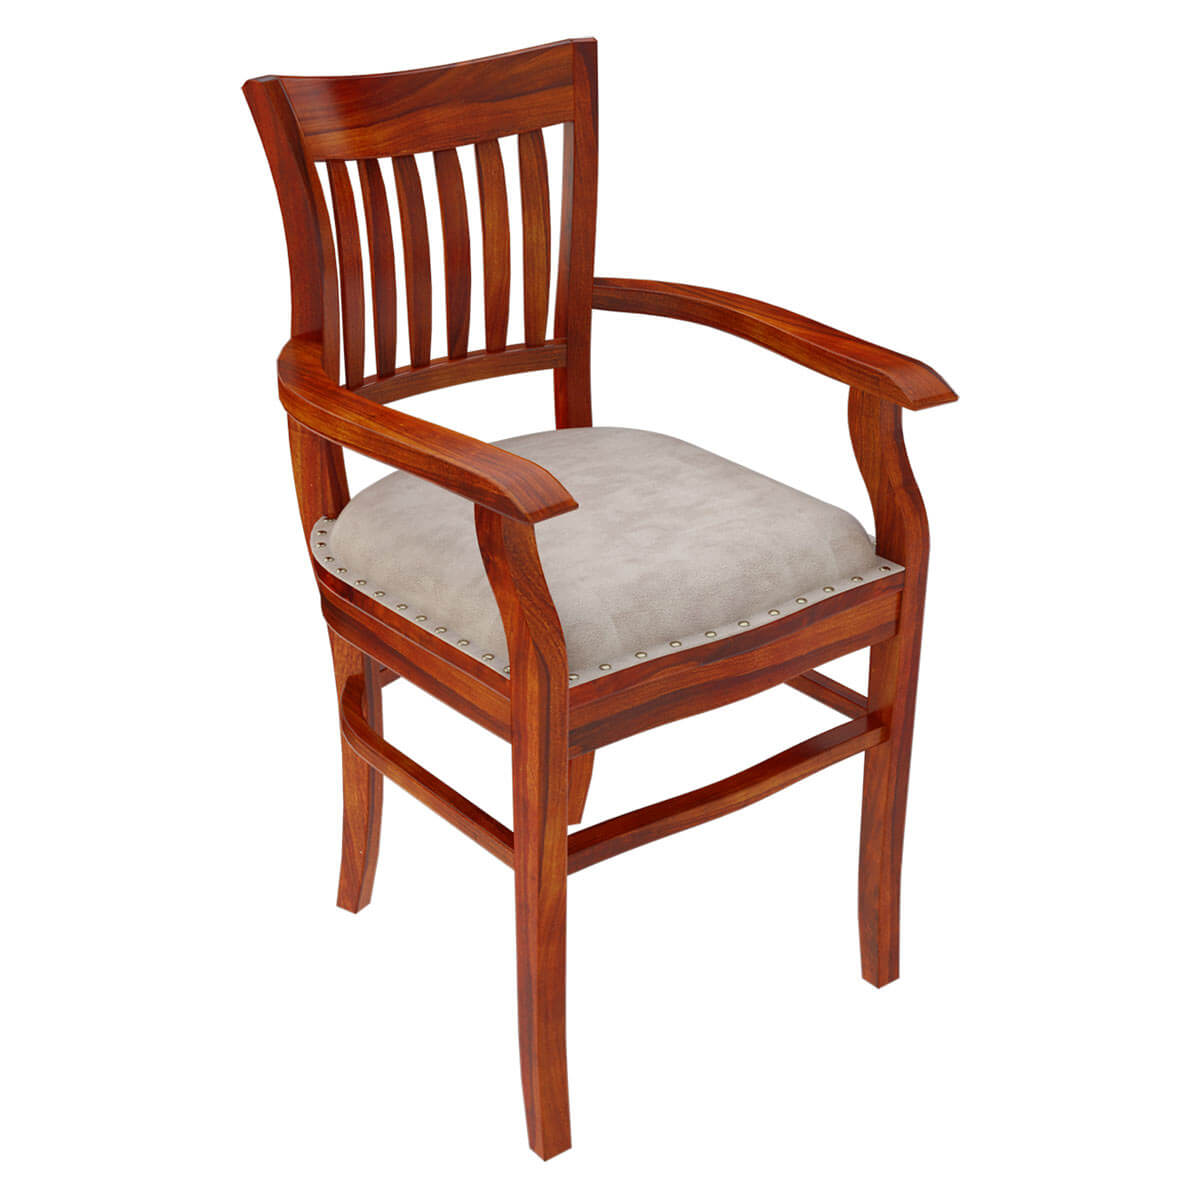 Wood Dining Chairs With Arms ~ Solid wood arm chair leather cushion dining furniture